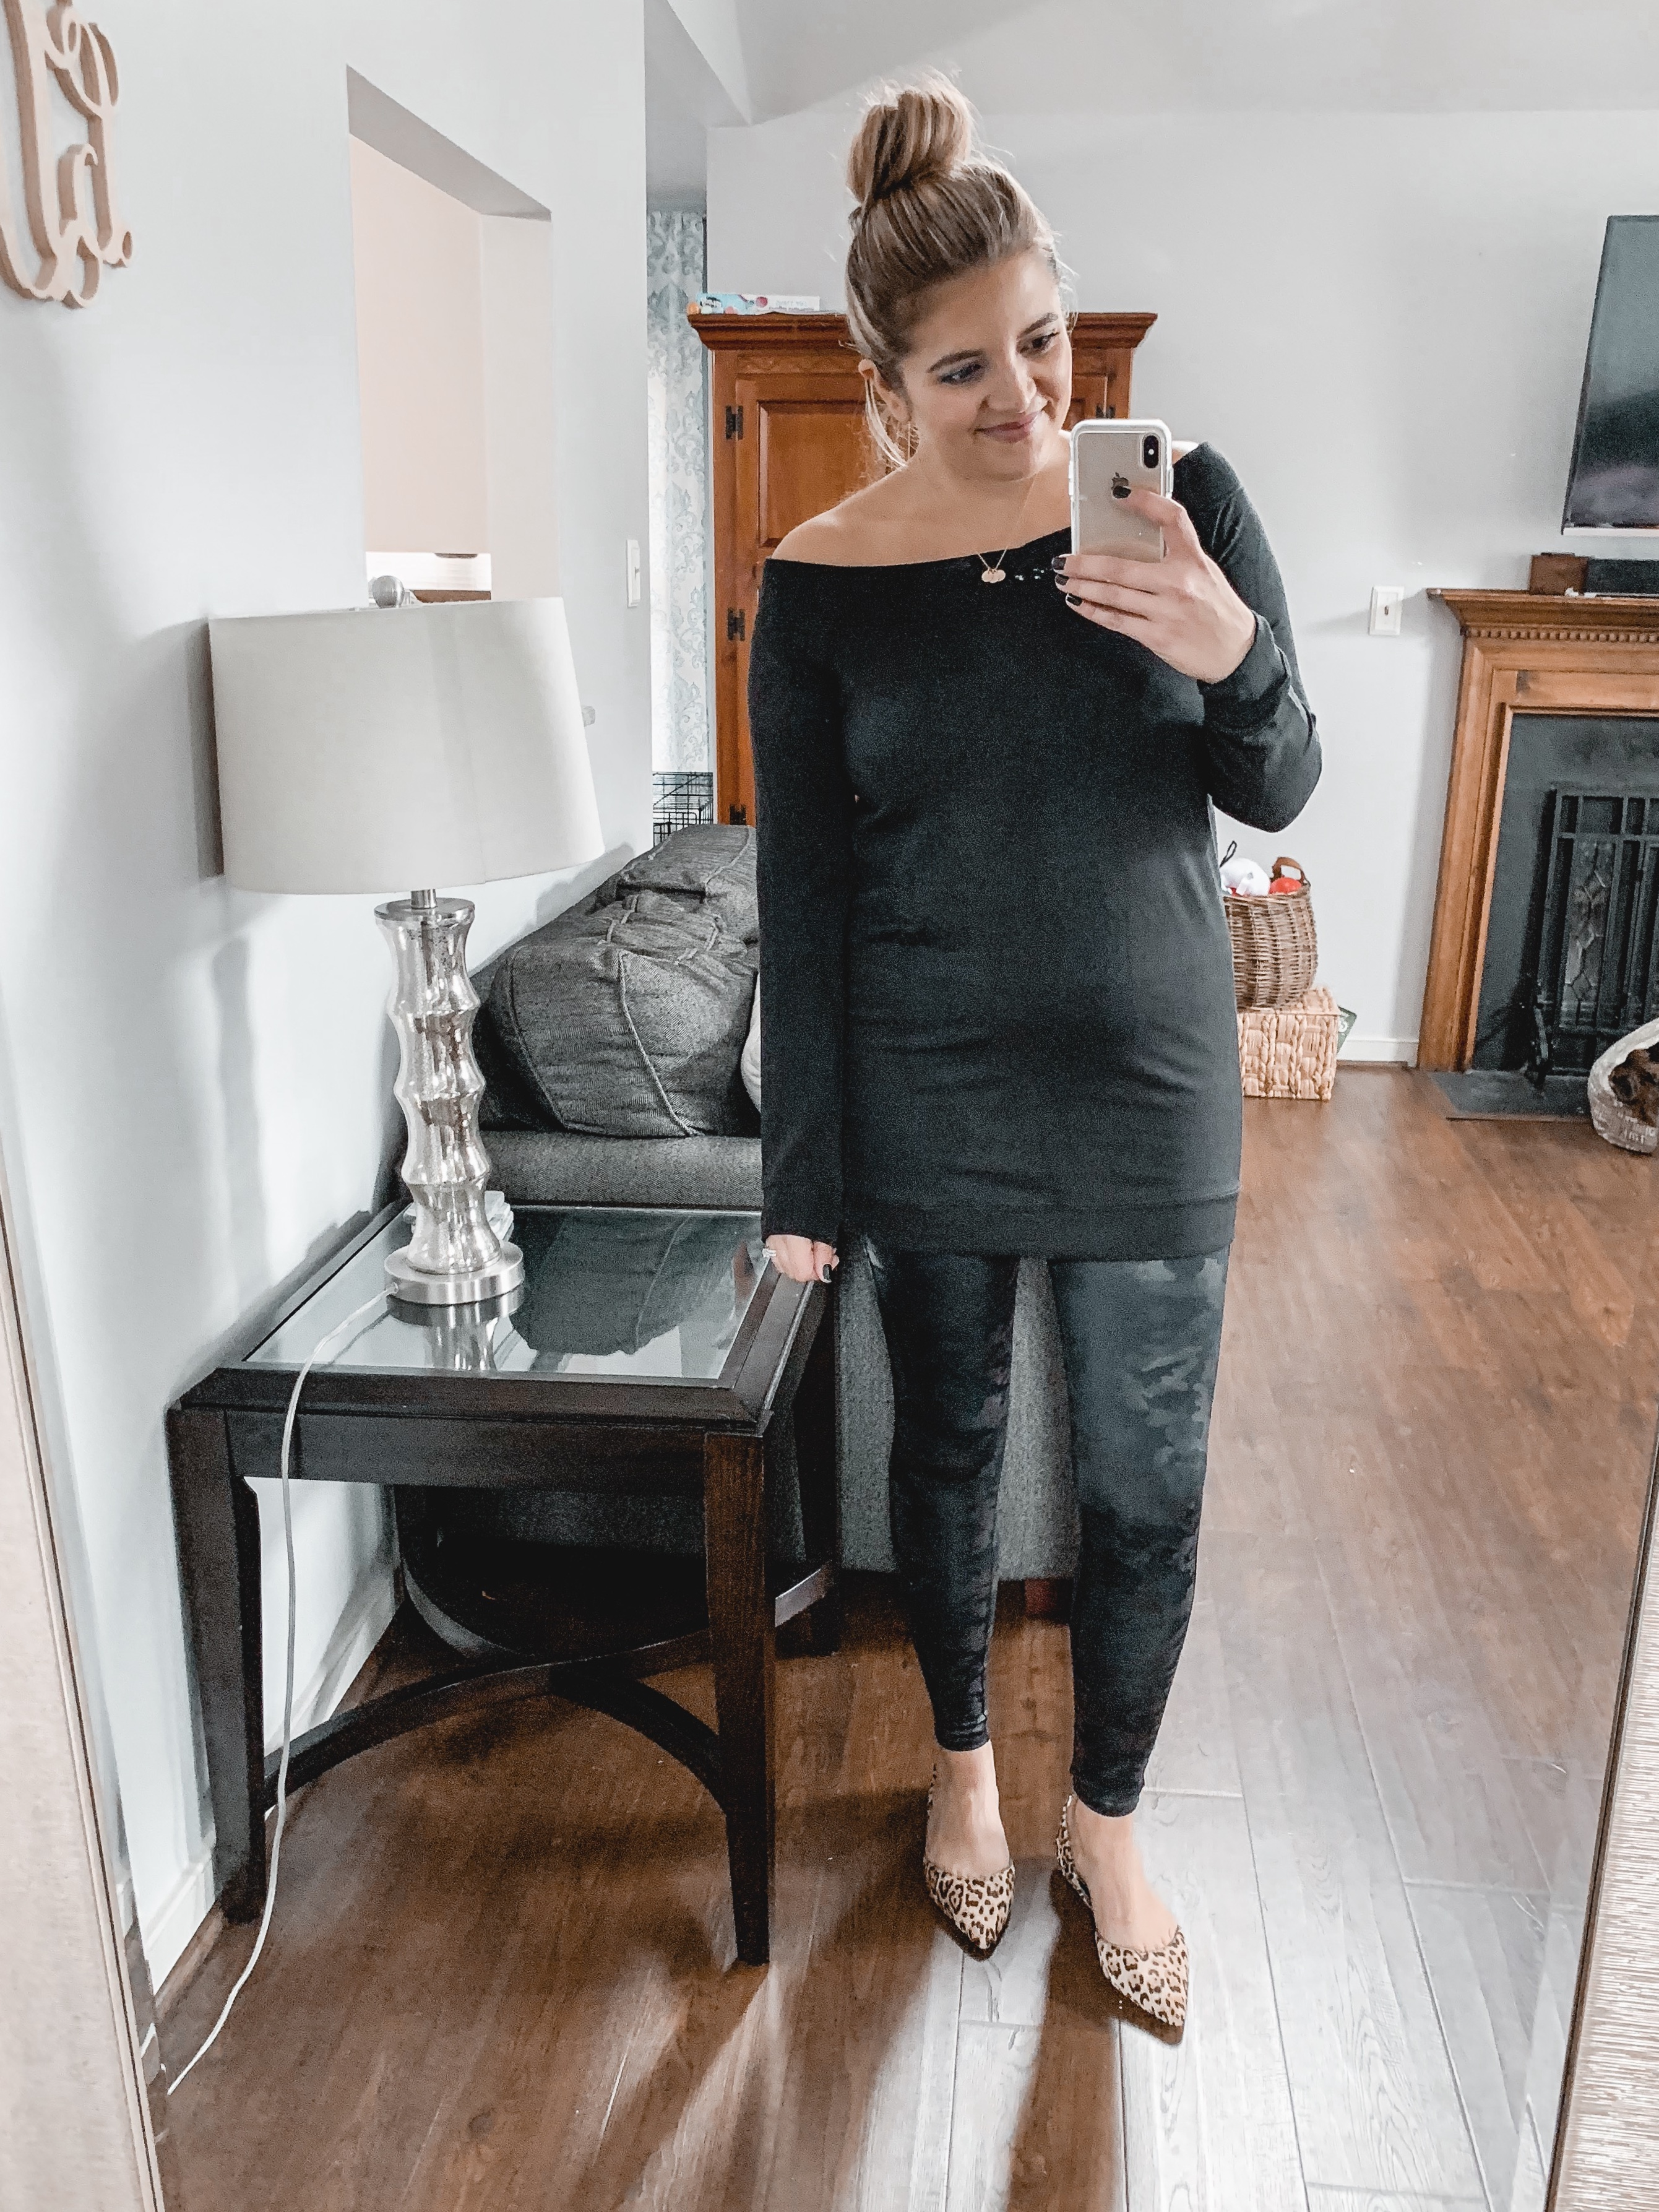 amazon prime wardrobe review and try on- I'm answering what Prime Wardrobe is, what I like and dislike about the service, and what pieces I ordered! bylaurenm.com